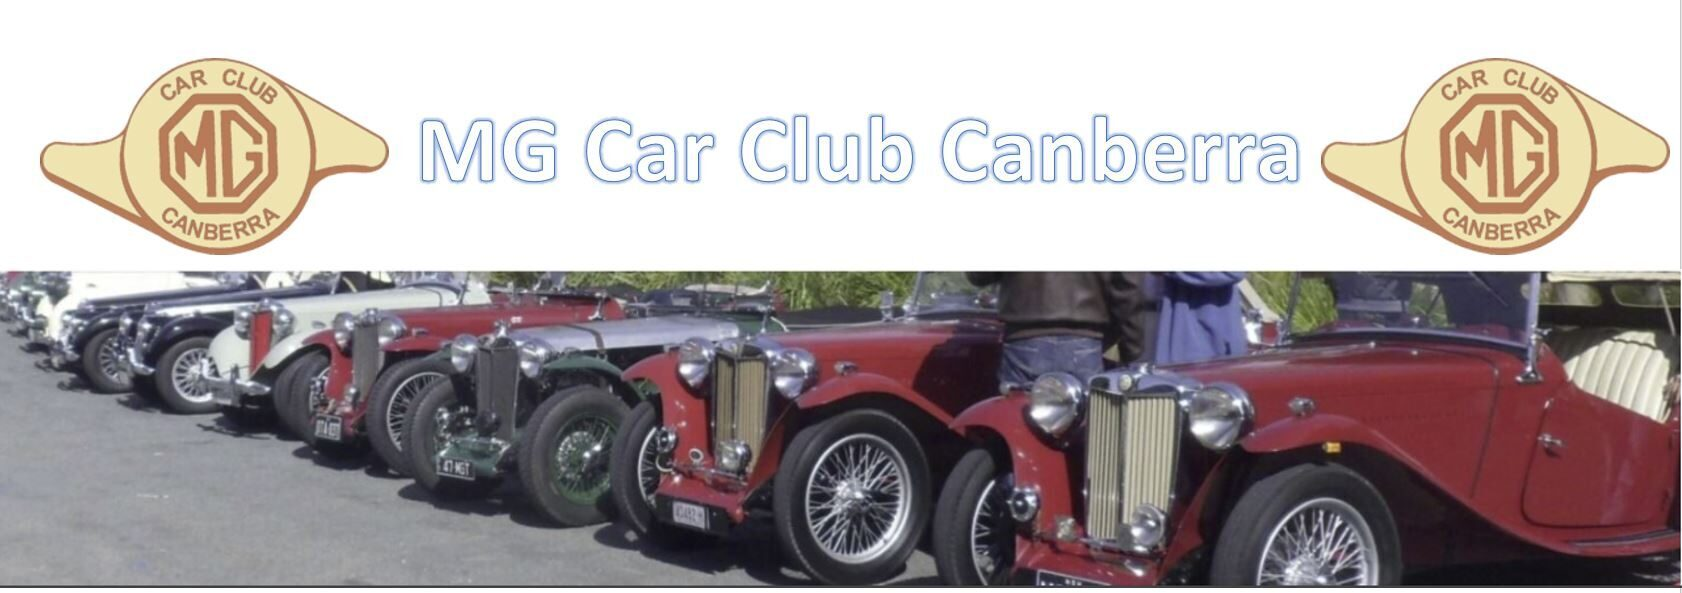 Welcome to the MG Car Club Canberra website